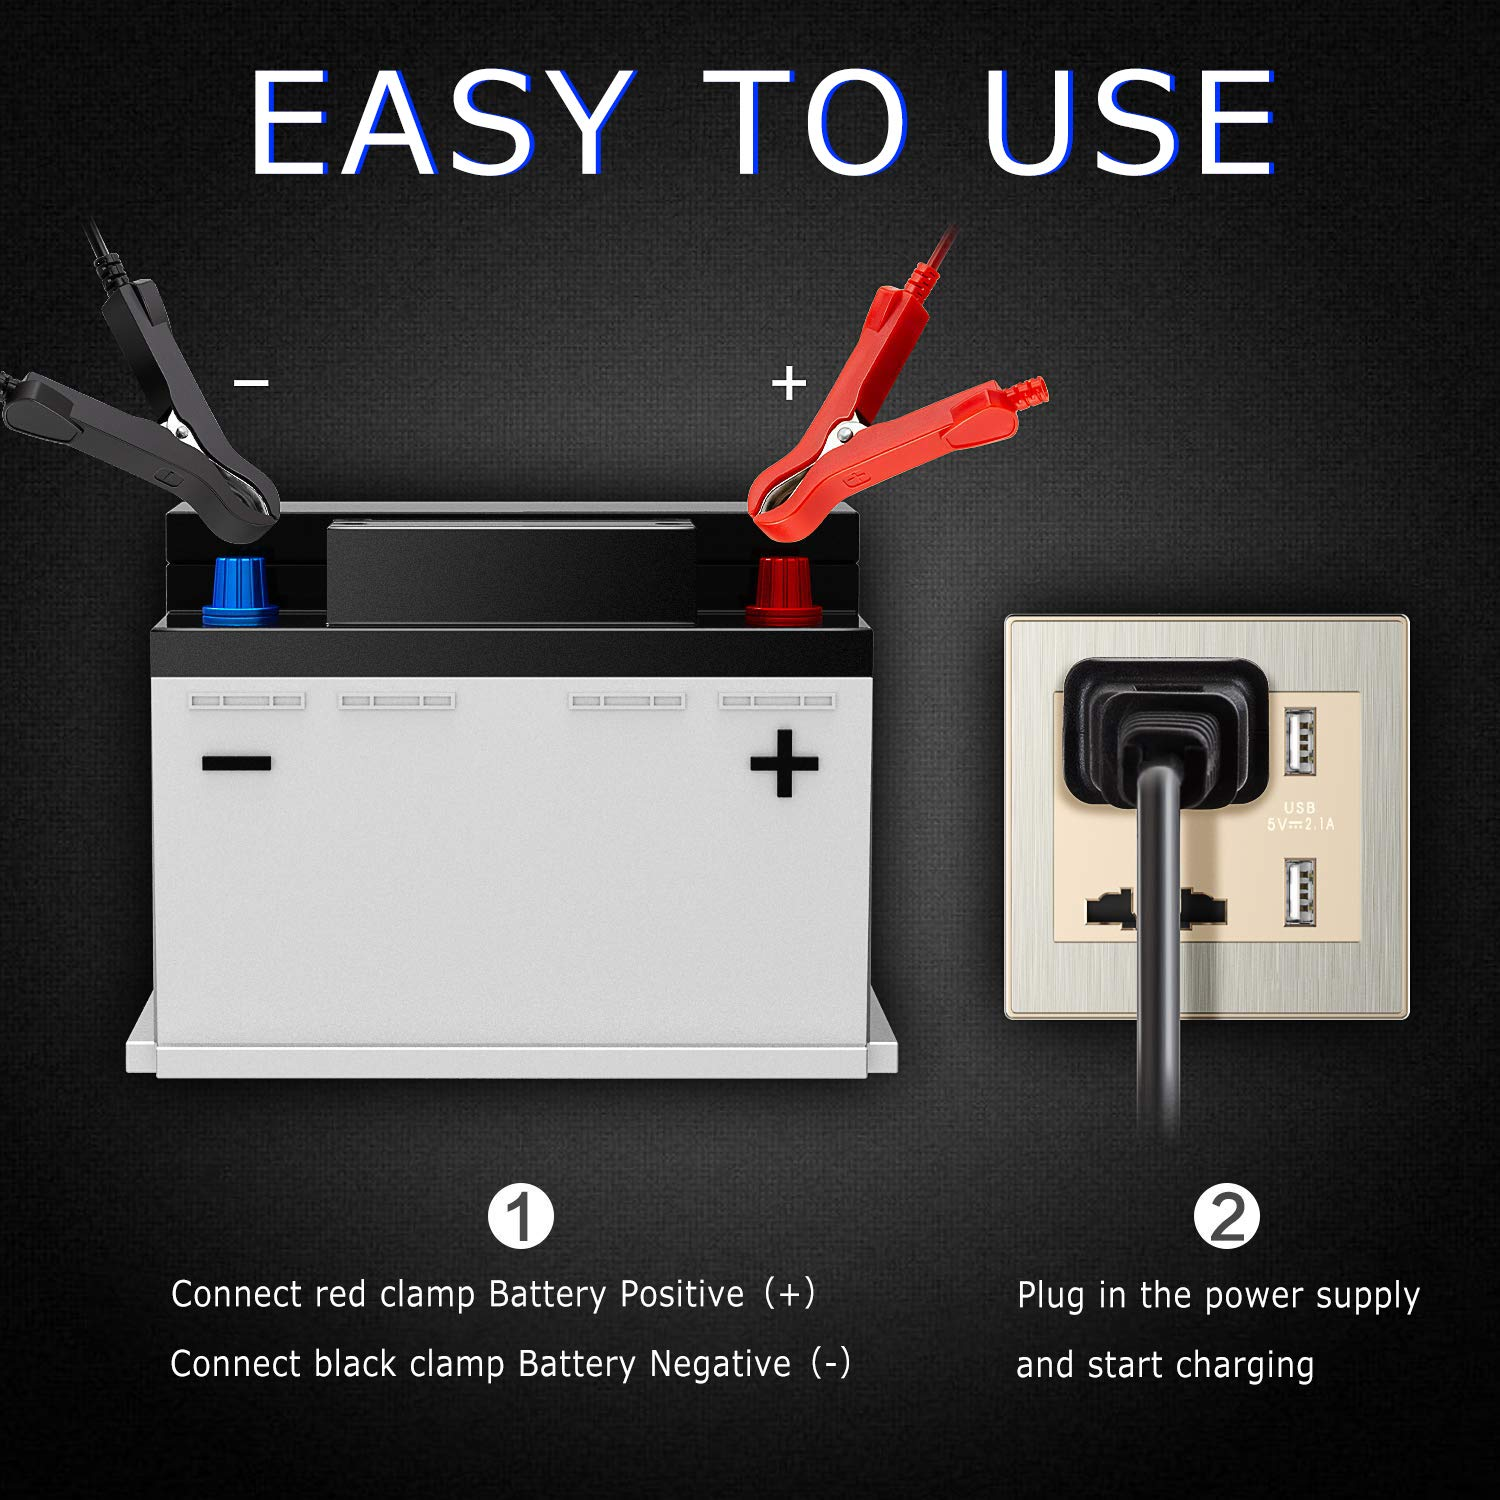 6A 12V Fully Automatic Car Charger with LCD Screen Smart Battery Charger /& Maintainer Maintain And Repair Batteries for Various Vehicle Aibeau Car Battery Charger Used to Charge